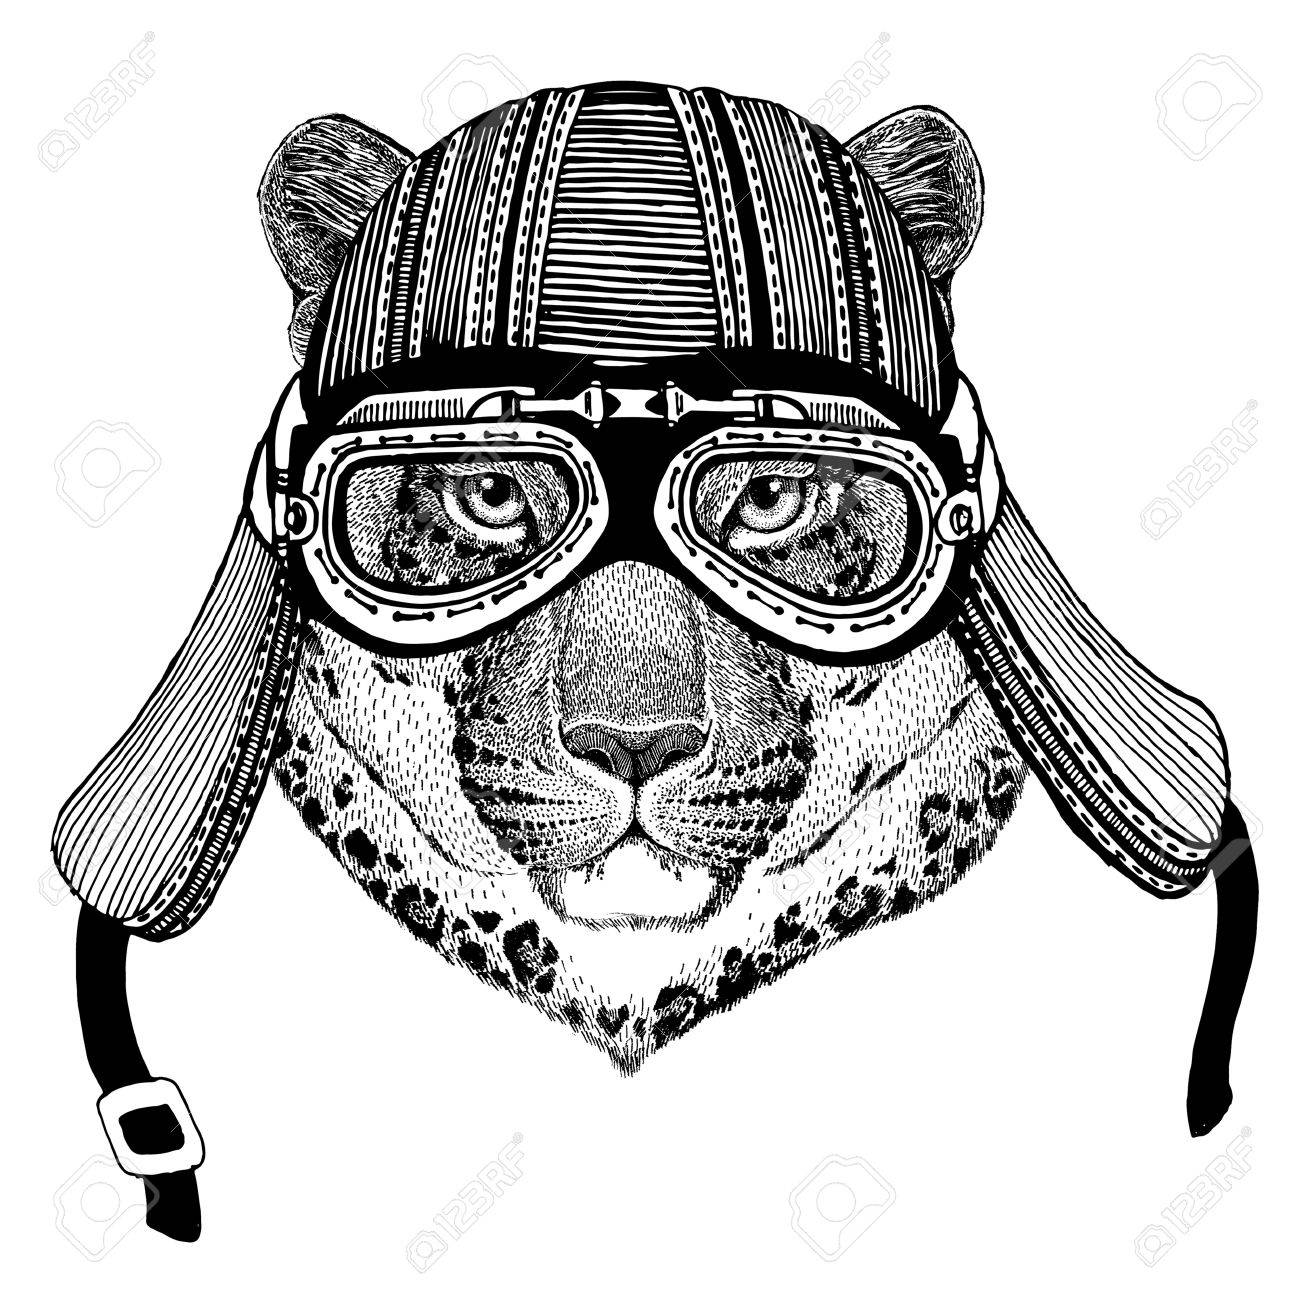 1300x1300 Wild Cat Leopard Cat O Mountain Panther Hand Drawn Image Of Animal